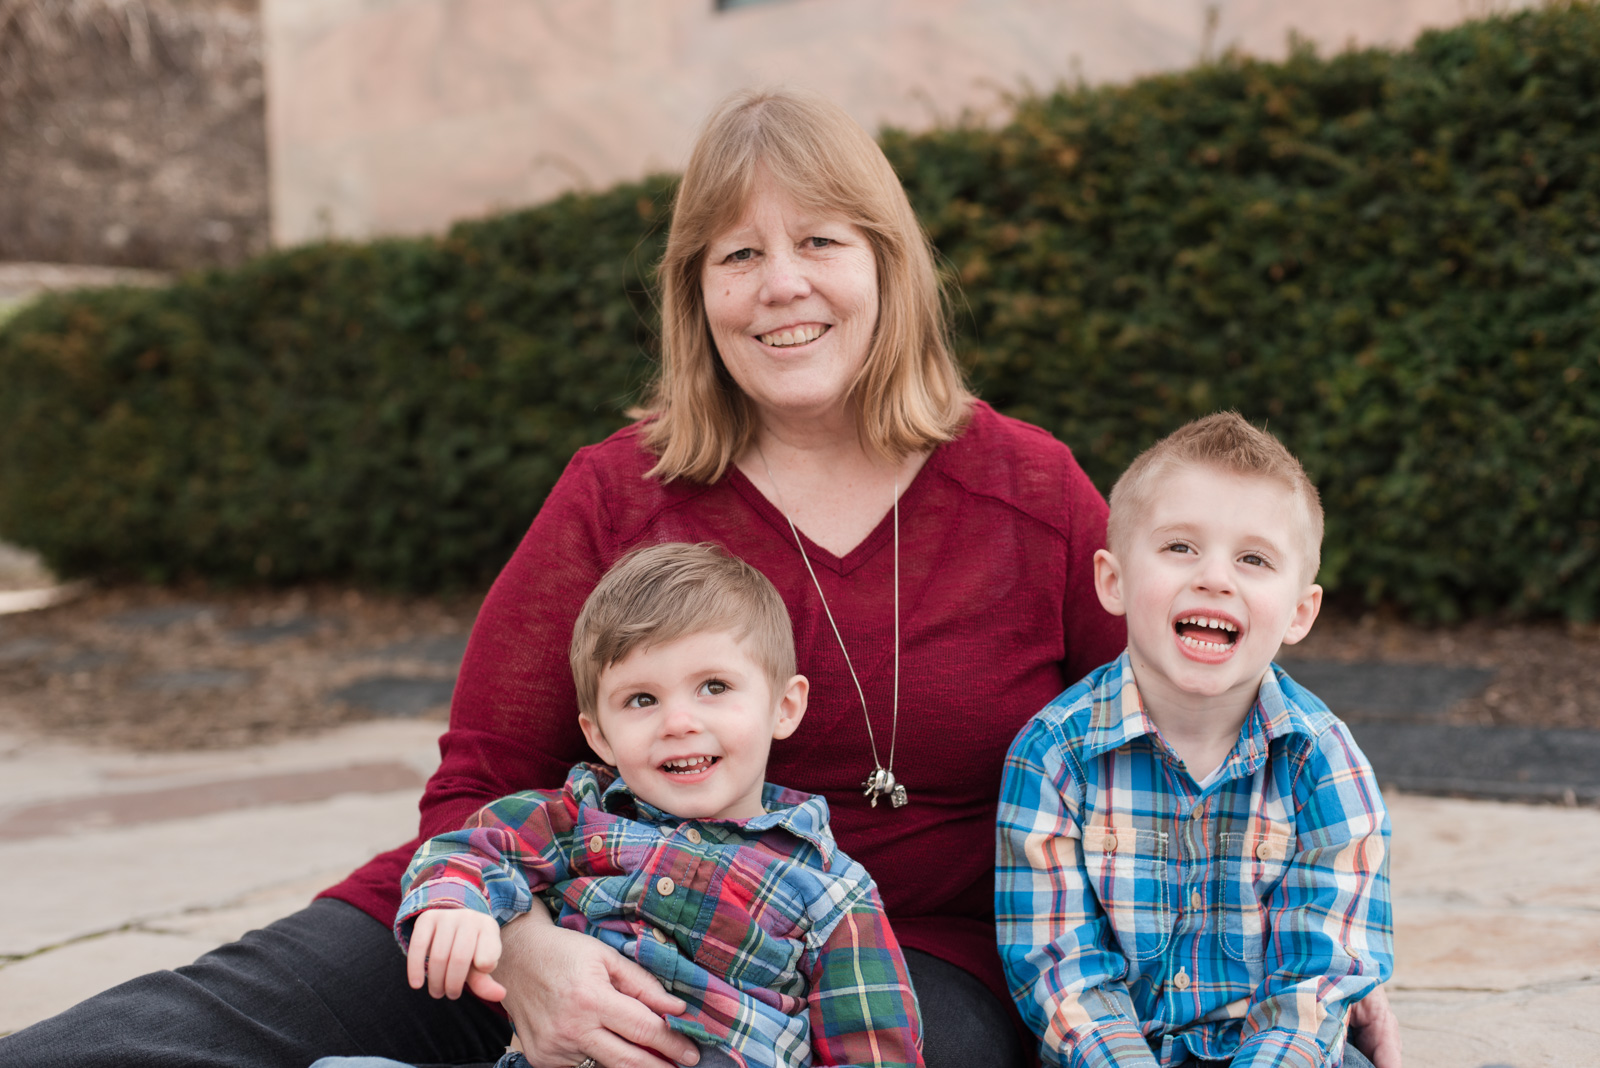 Badger Family Portraits in Salt Lake City